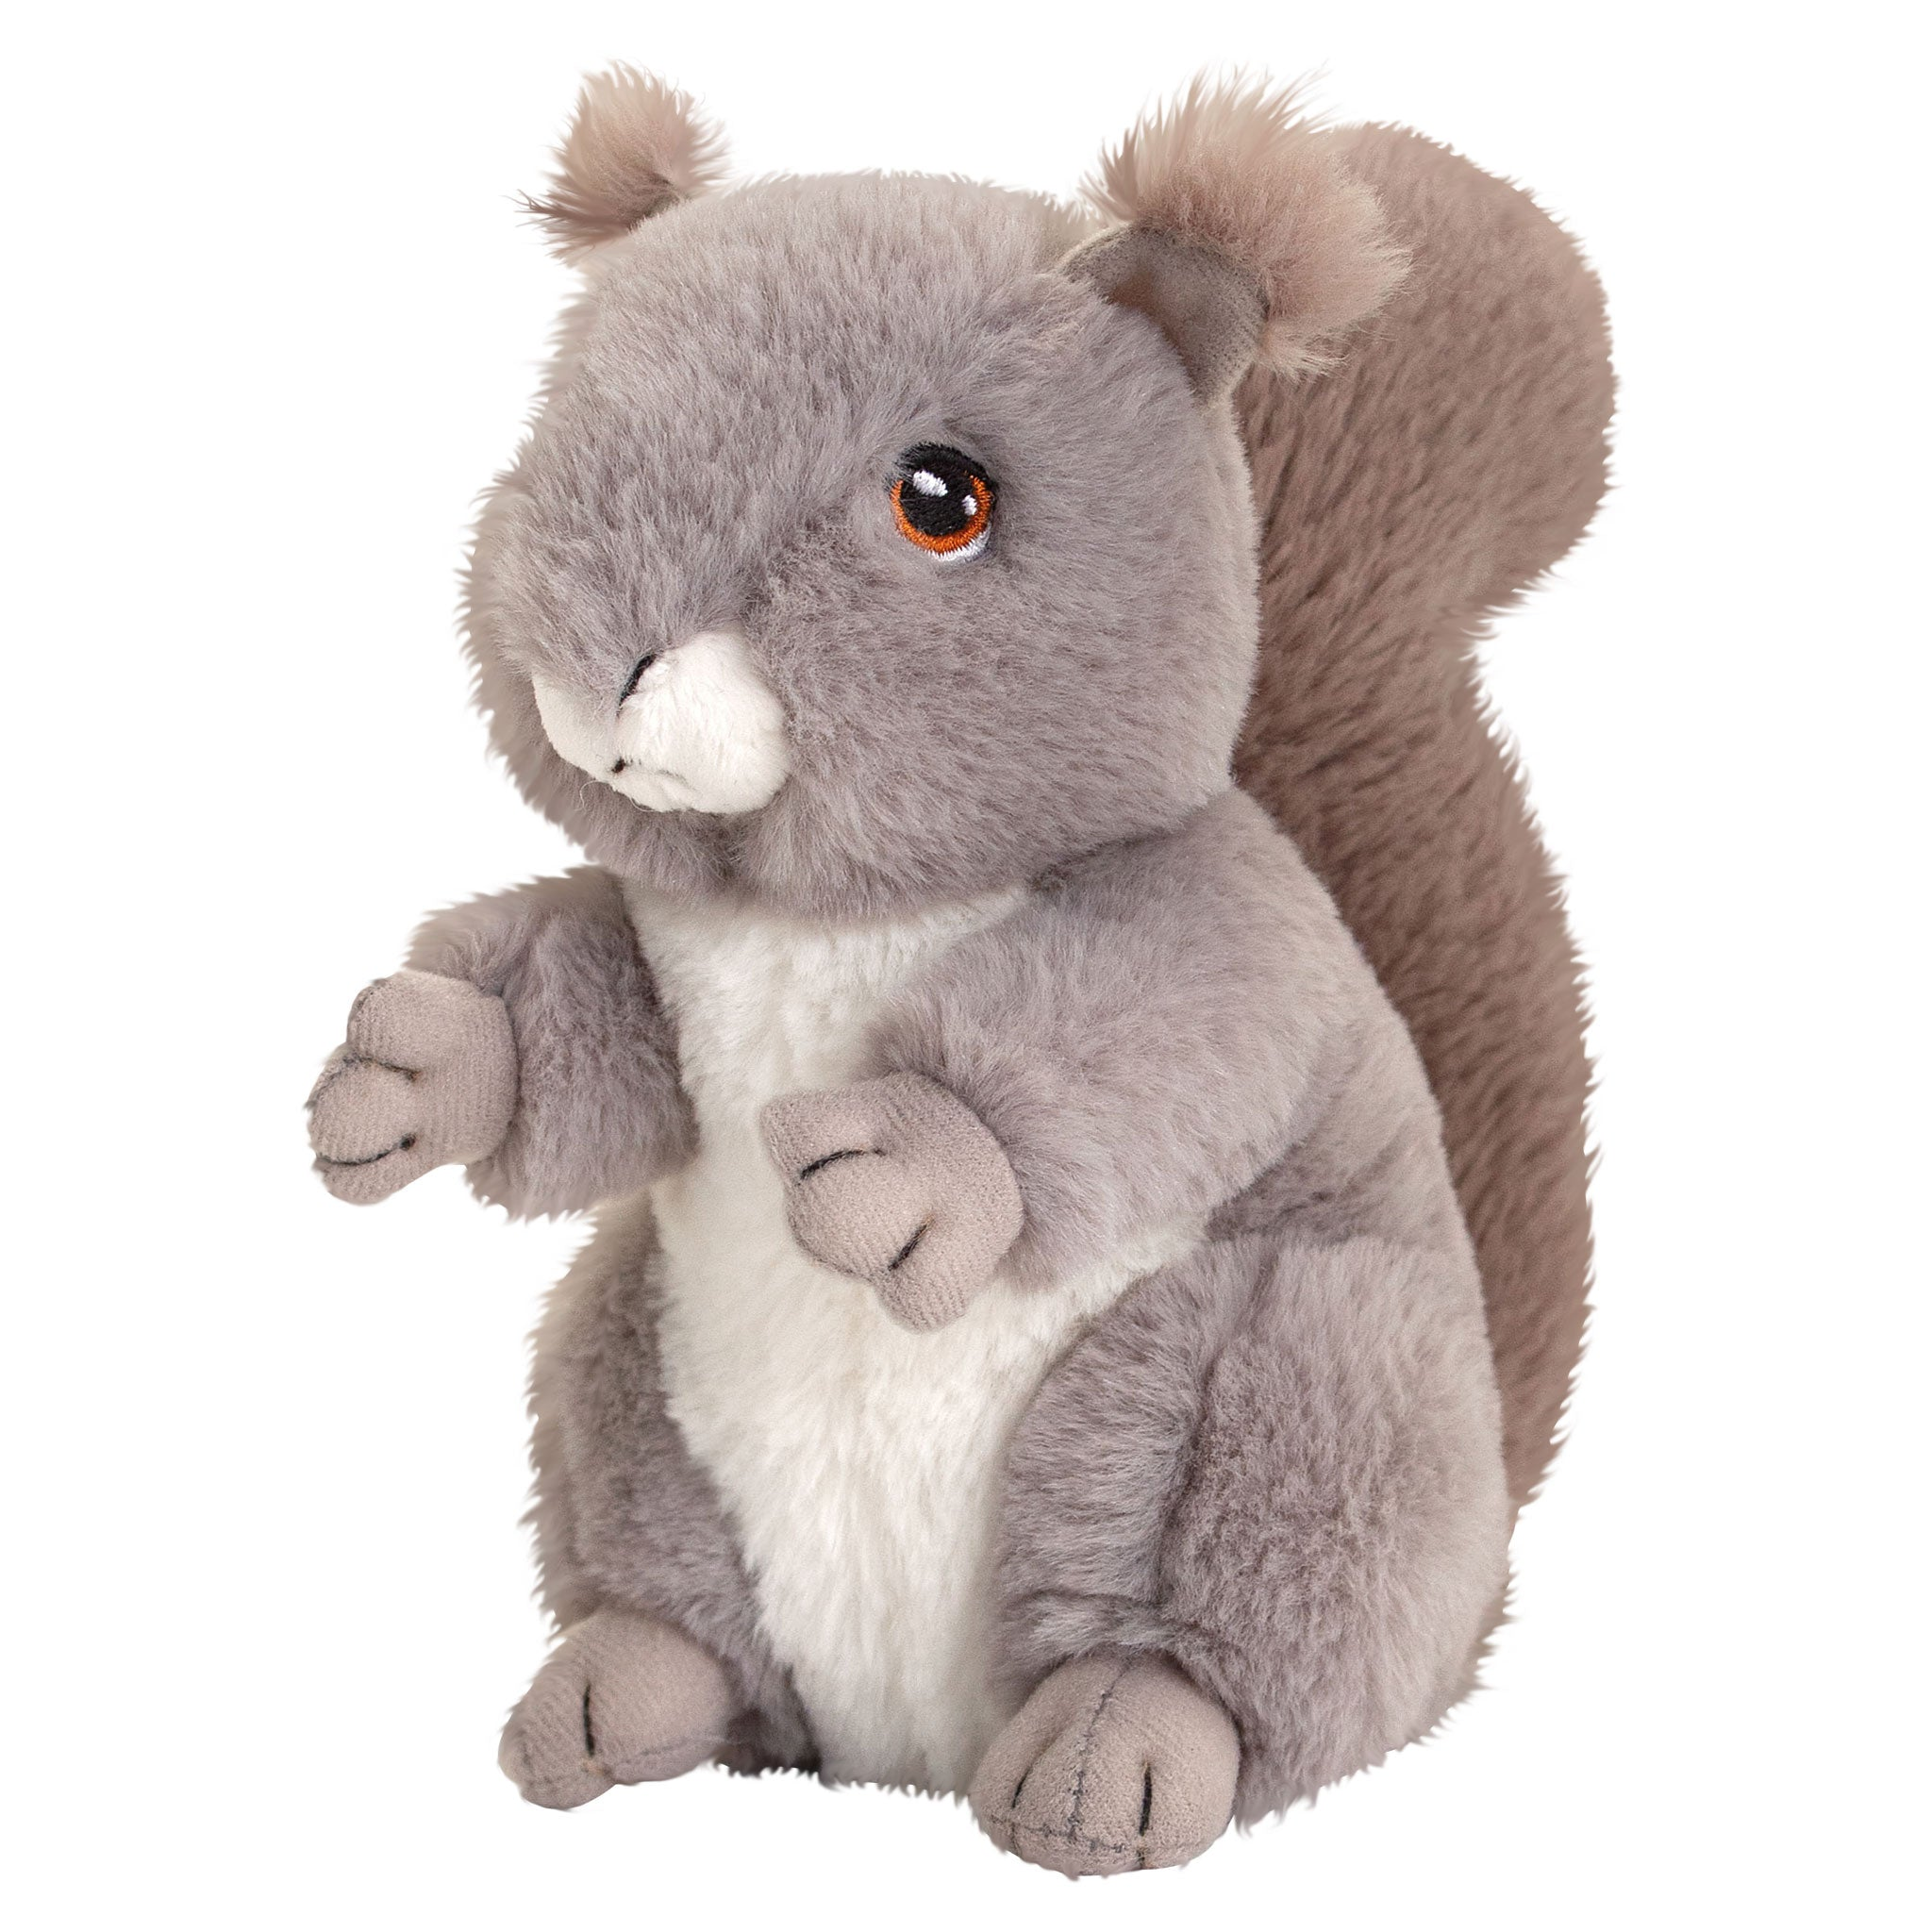 Squirrel - Recycled Soft Toy